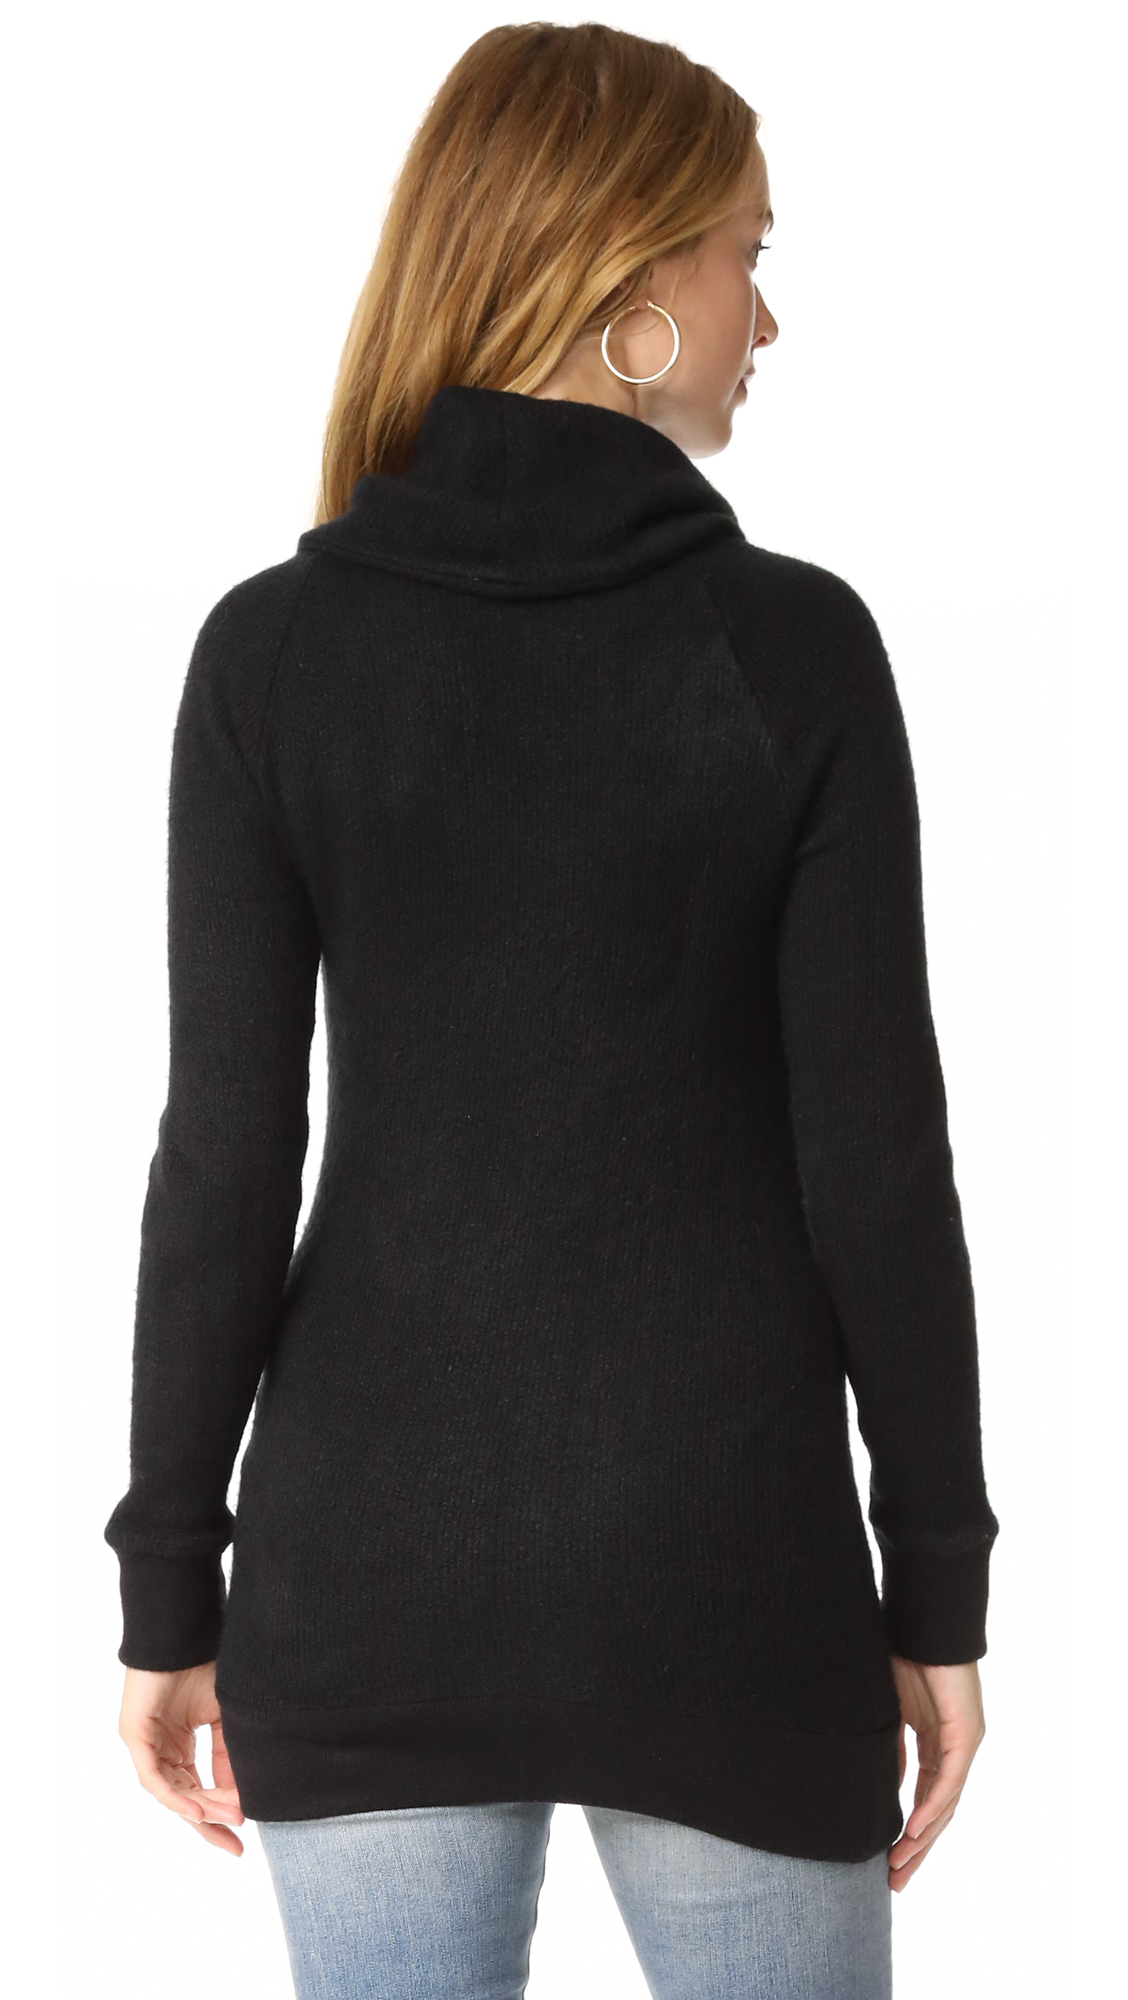 684d3012b439 Ingrid & Isabel Cowl Neck Maternity Sweater | SHOPBOP